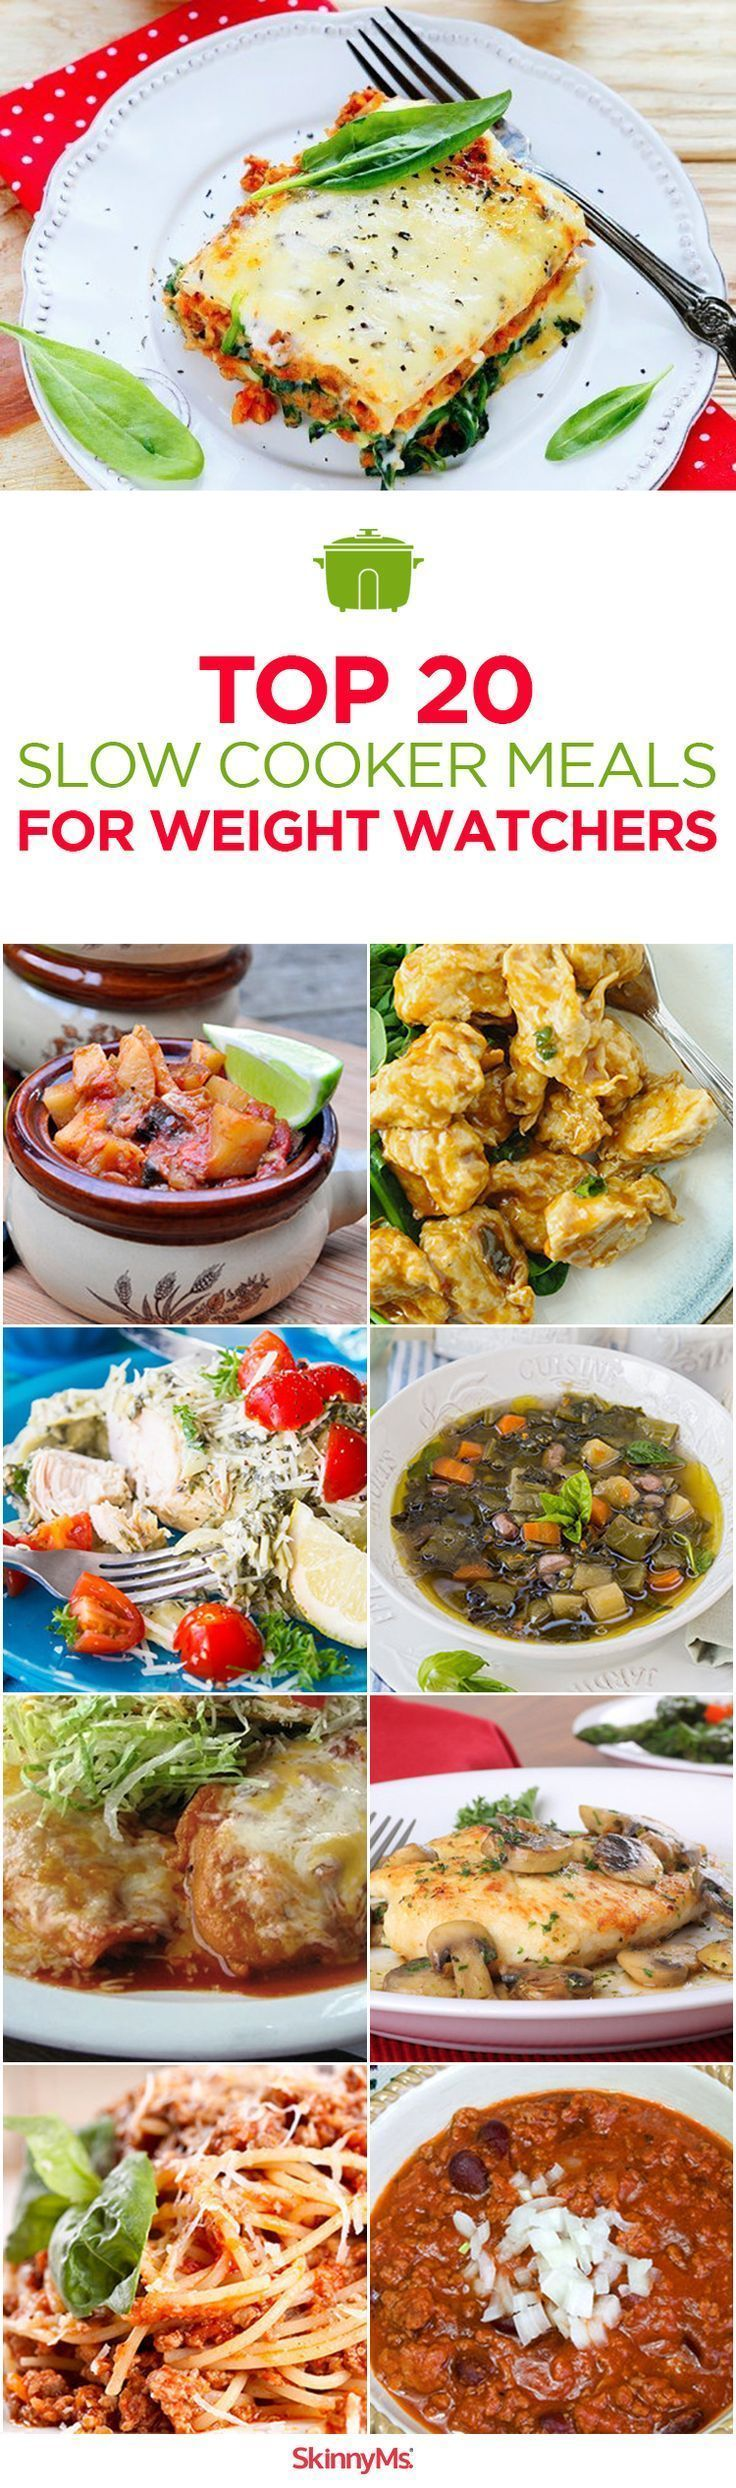 When you're choosing slow cooker weight loss meals, you'll benefit in two huge ways. First, you get all the crockpot convenience you love. Prepare the ingredients in the morning or at lunch, and then come home to a warm dinner, ready to serve. Here are our Top 20 Slow Cooker Meals for Weight Watchers! #slowcooker #cleaneating #healthyeats